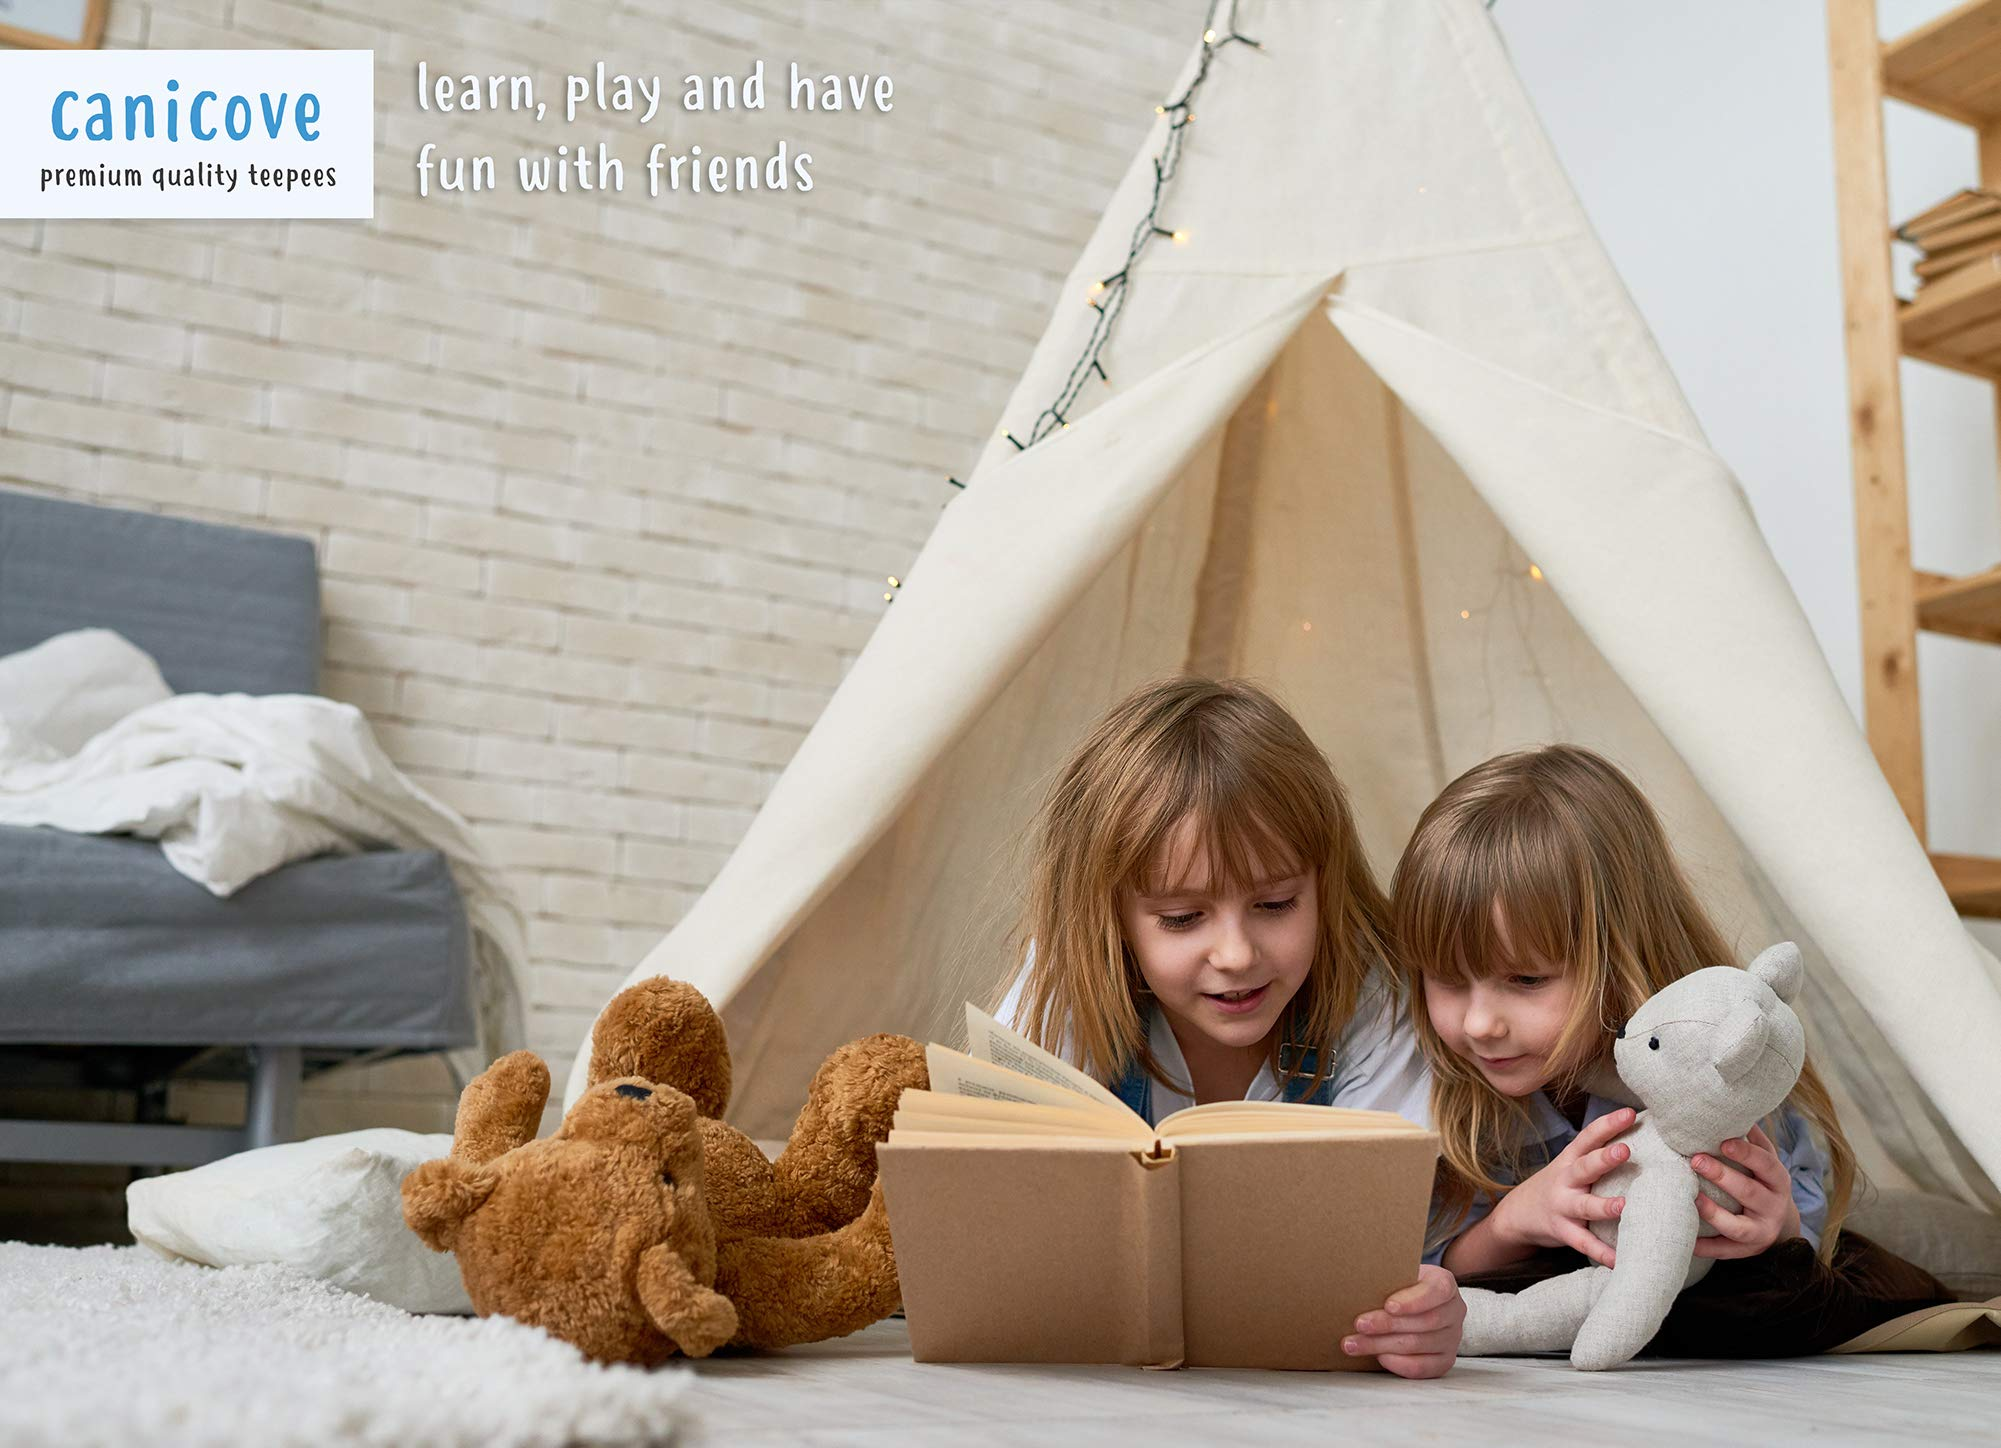 Canicove Teepee Tent for Kids - Award Winning 100% Cotton Play Tent - Large Indoor/Outdoor Tipi for Boys & Girls + Free Fun Flags! by Canicove (Image #7)